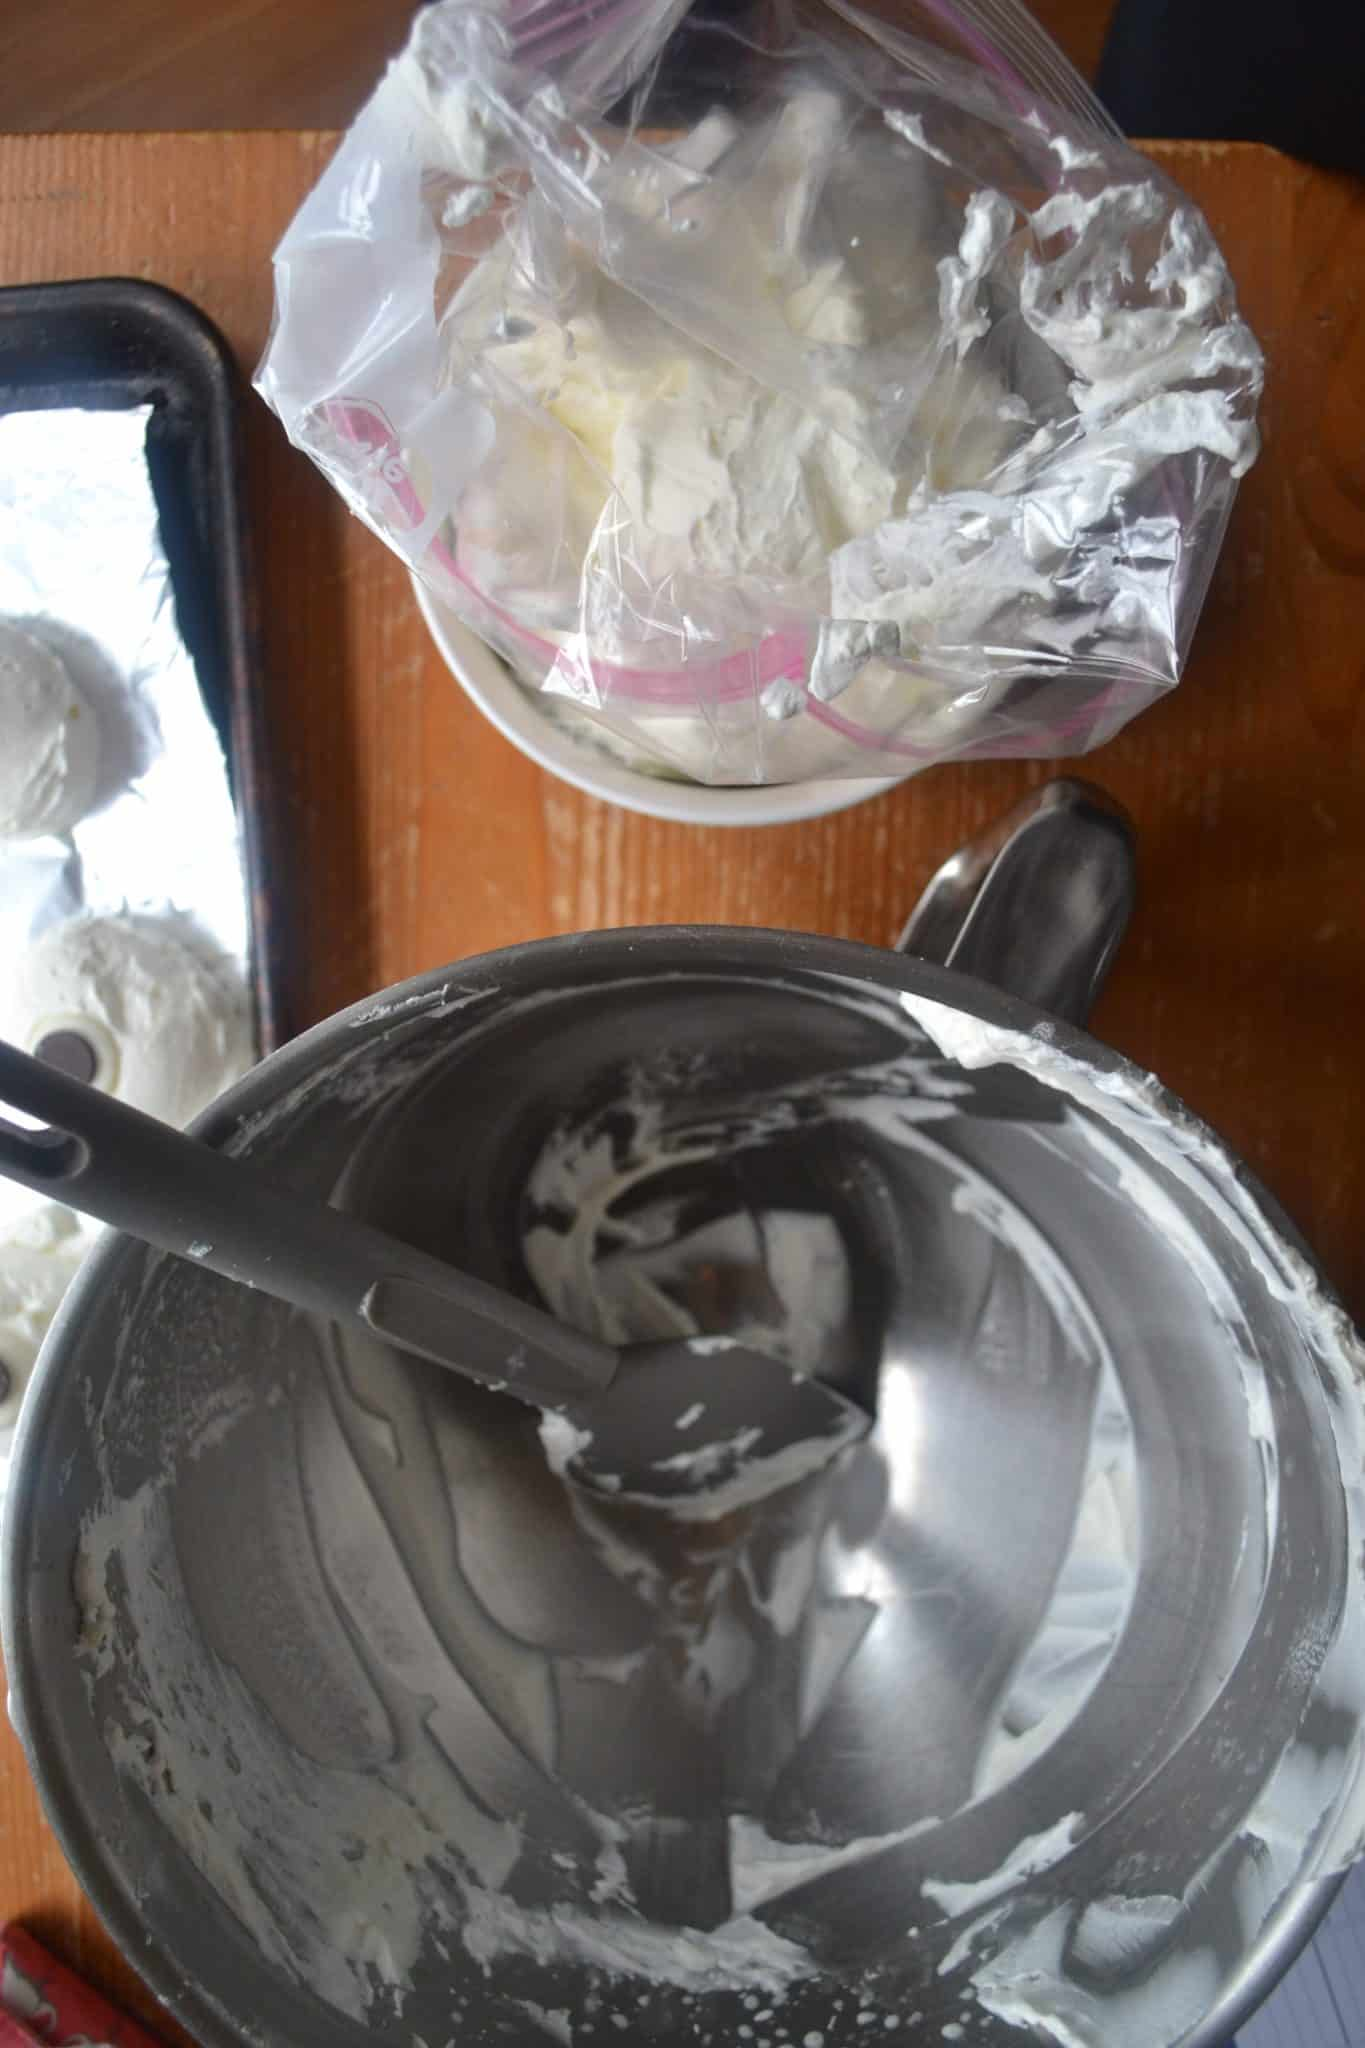 a mixing bowl and homemade whipped crema being put into a bag for piping